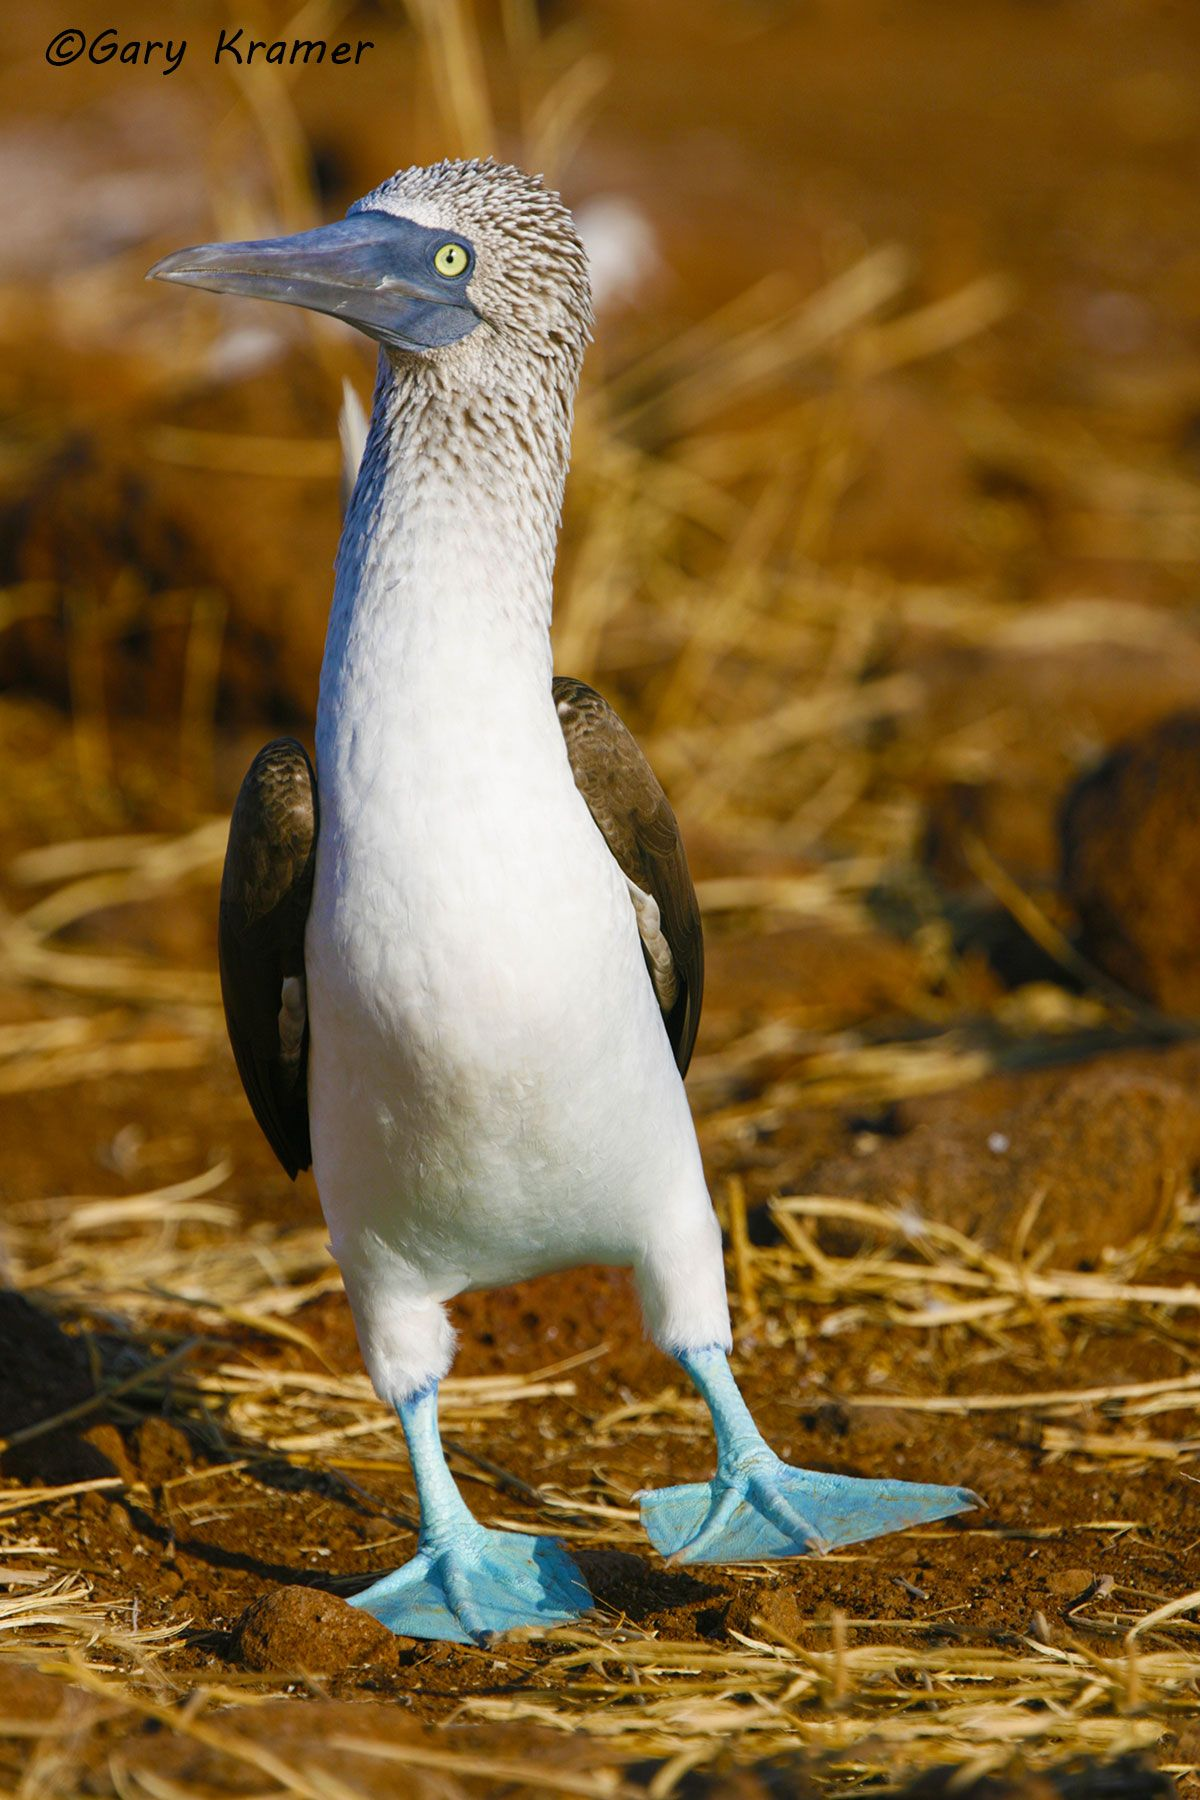 Blue-footed Booby (Sula nebouxii) - NBBB#069d.jpg